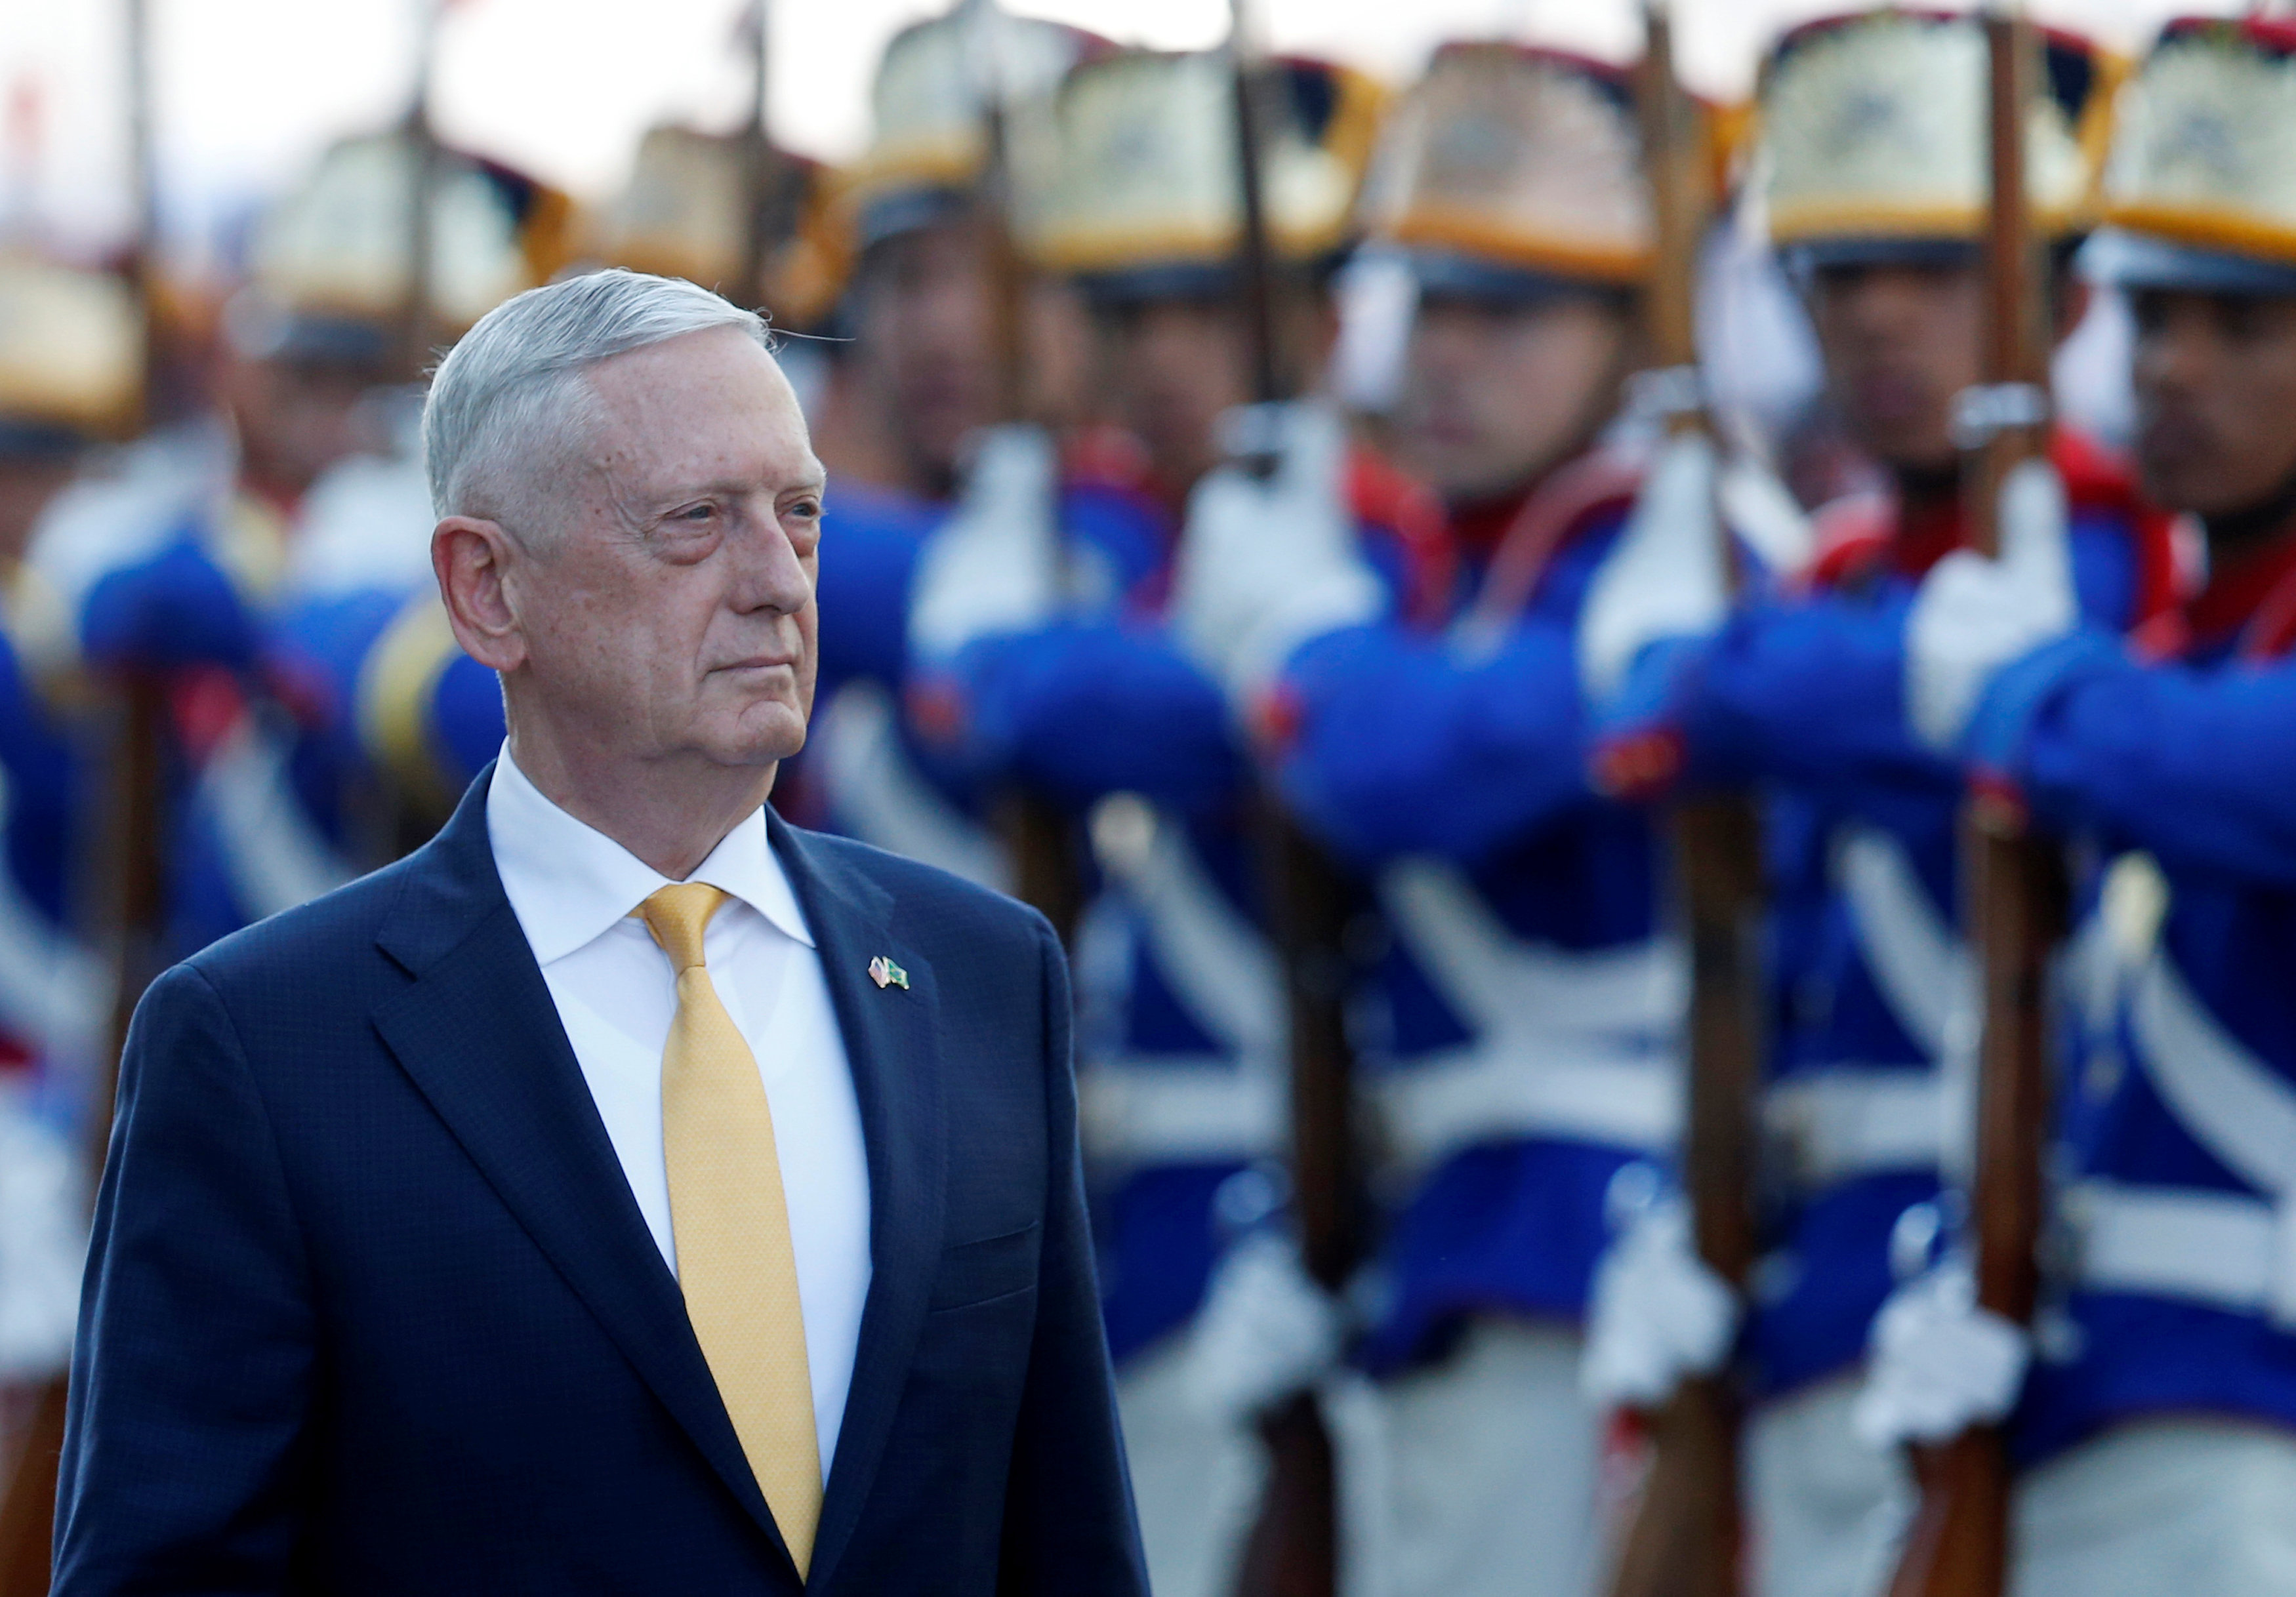 U.S. Secretary of Defence James Mattis reviews the honor guard before meeting with the Brazilian Defense Minister Joaquim Silva e Luna (not pictured) in Brasilia, Brazil August 13, 2018. REUTERS/Adriano Machado